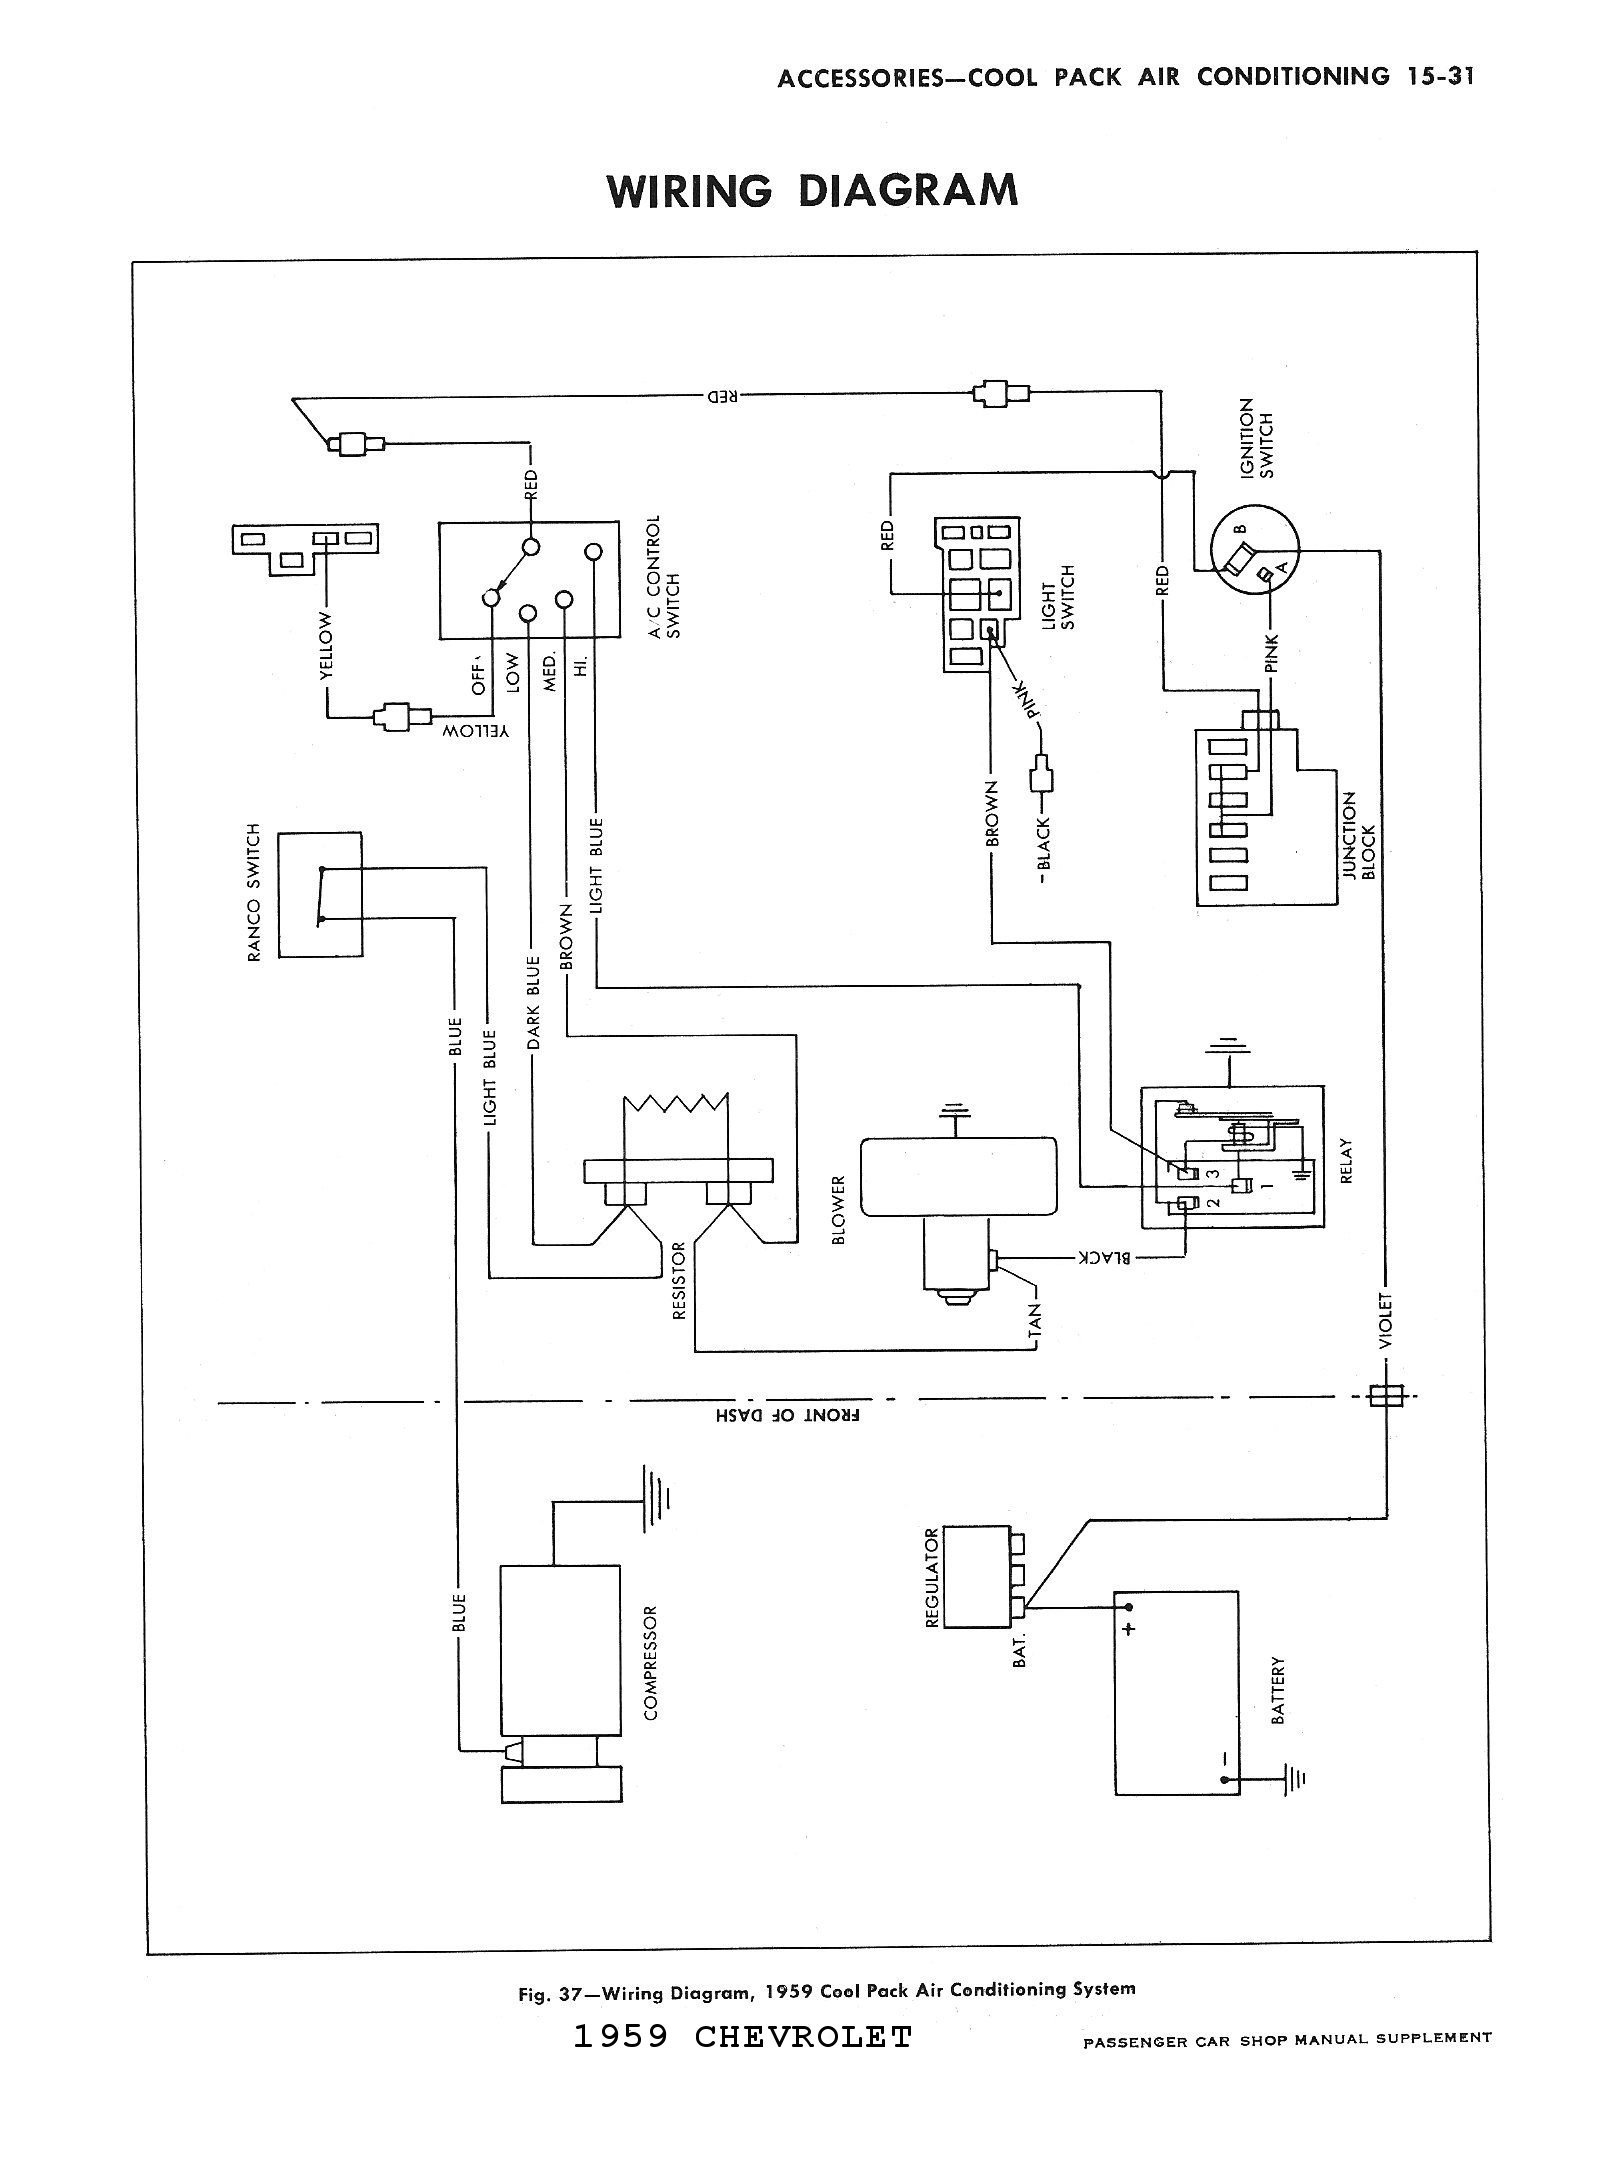 chevrolet alternator wiring diagram 2001 ford f250 radio 1962 corvette starter get free image